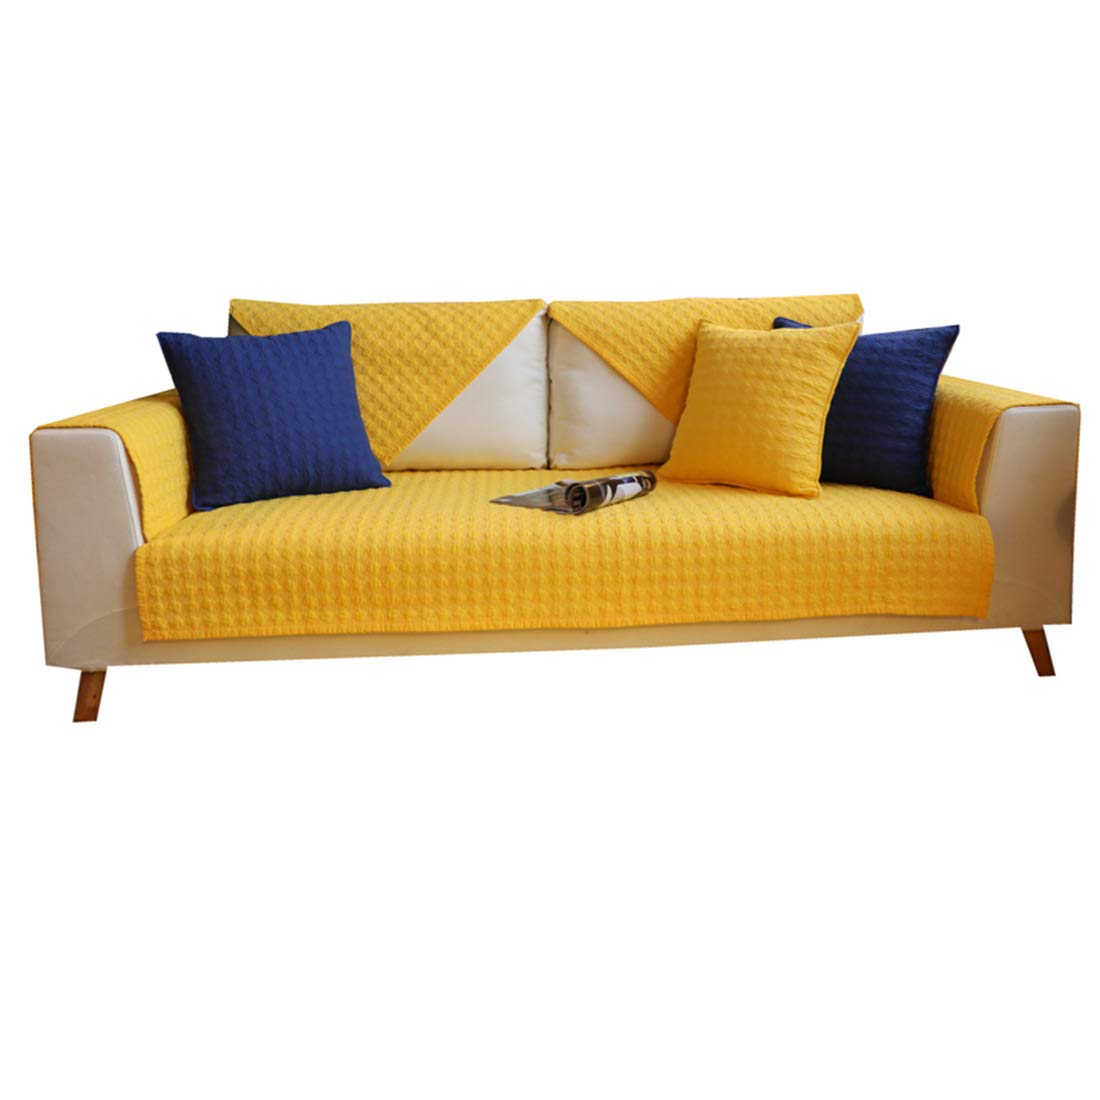 Royhom Simple Solid Color Sofa Protector Slipcover Keeps Furniture Clear Cotton Material/Backrest Armrest Sold Separately/Warm Yellow 43'' x 83'' (110 x 210cm)